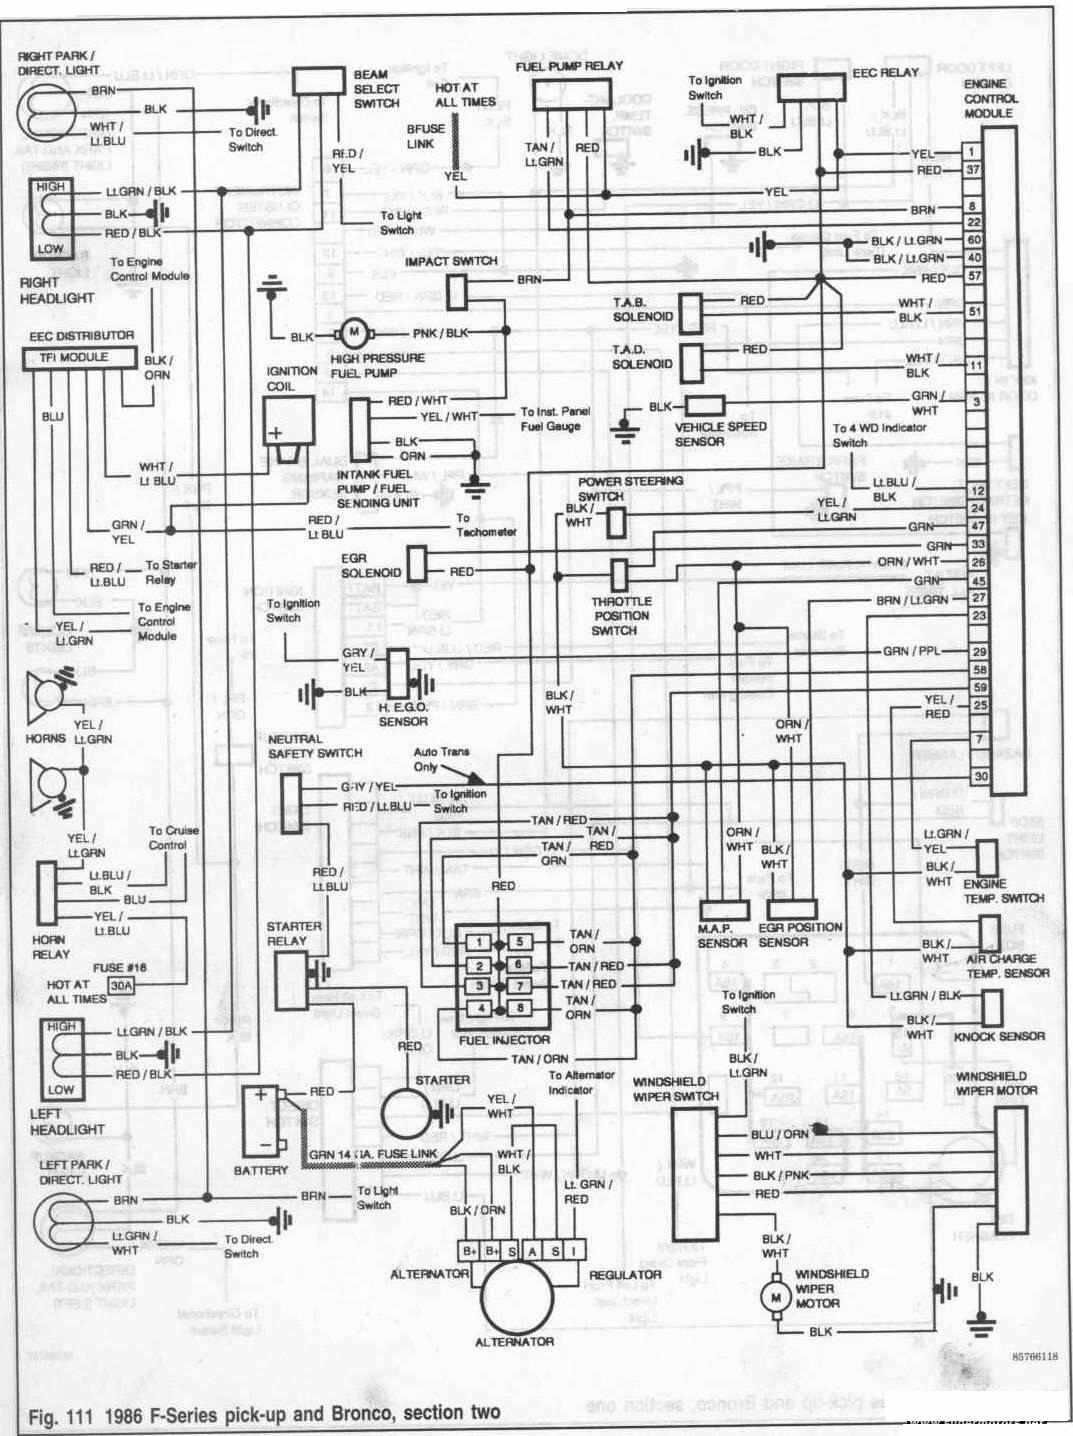 1981 Ford Light Switch Diagram - Electrical Wiring Diagram Guide Jeep Turn Signal Wiring Diagram on ford 8n wiring diagram, 1960 willys l6-226 12 volt wiring diagram, 1979 jeep wiring diagram, jeep cj5 wiring-diagram, 1986 jeep wiring diagram, simple chopper wiring diagram, 86 cj7 distributor wiring diagram, 2014 jeep wrangler wiring diagram, 1984 jeep cj wiring diagram, 2009 dodge 4500 pto wiring diagram,